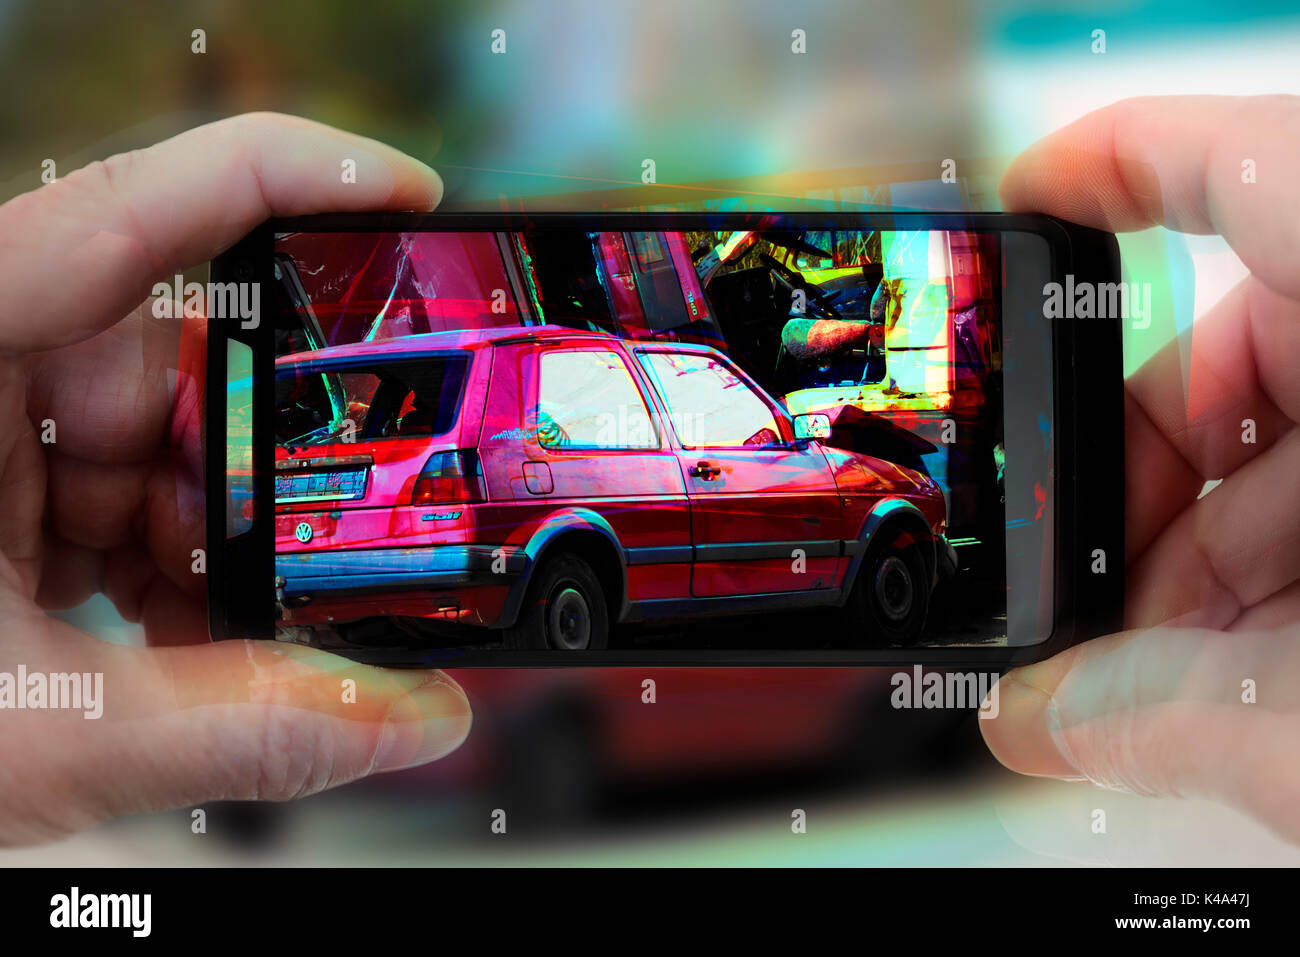 Car Accident Photo In A Cellphone, Gawker - Stock Image